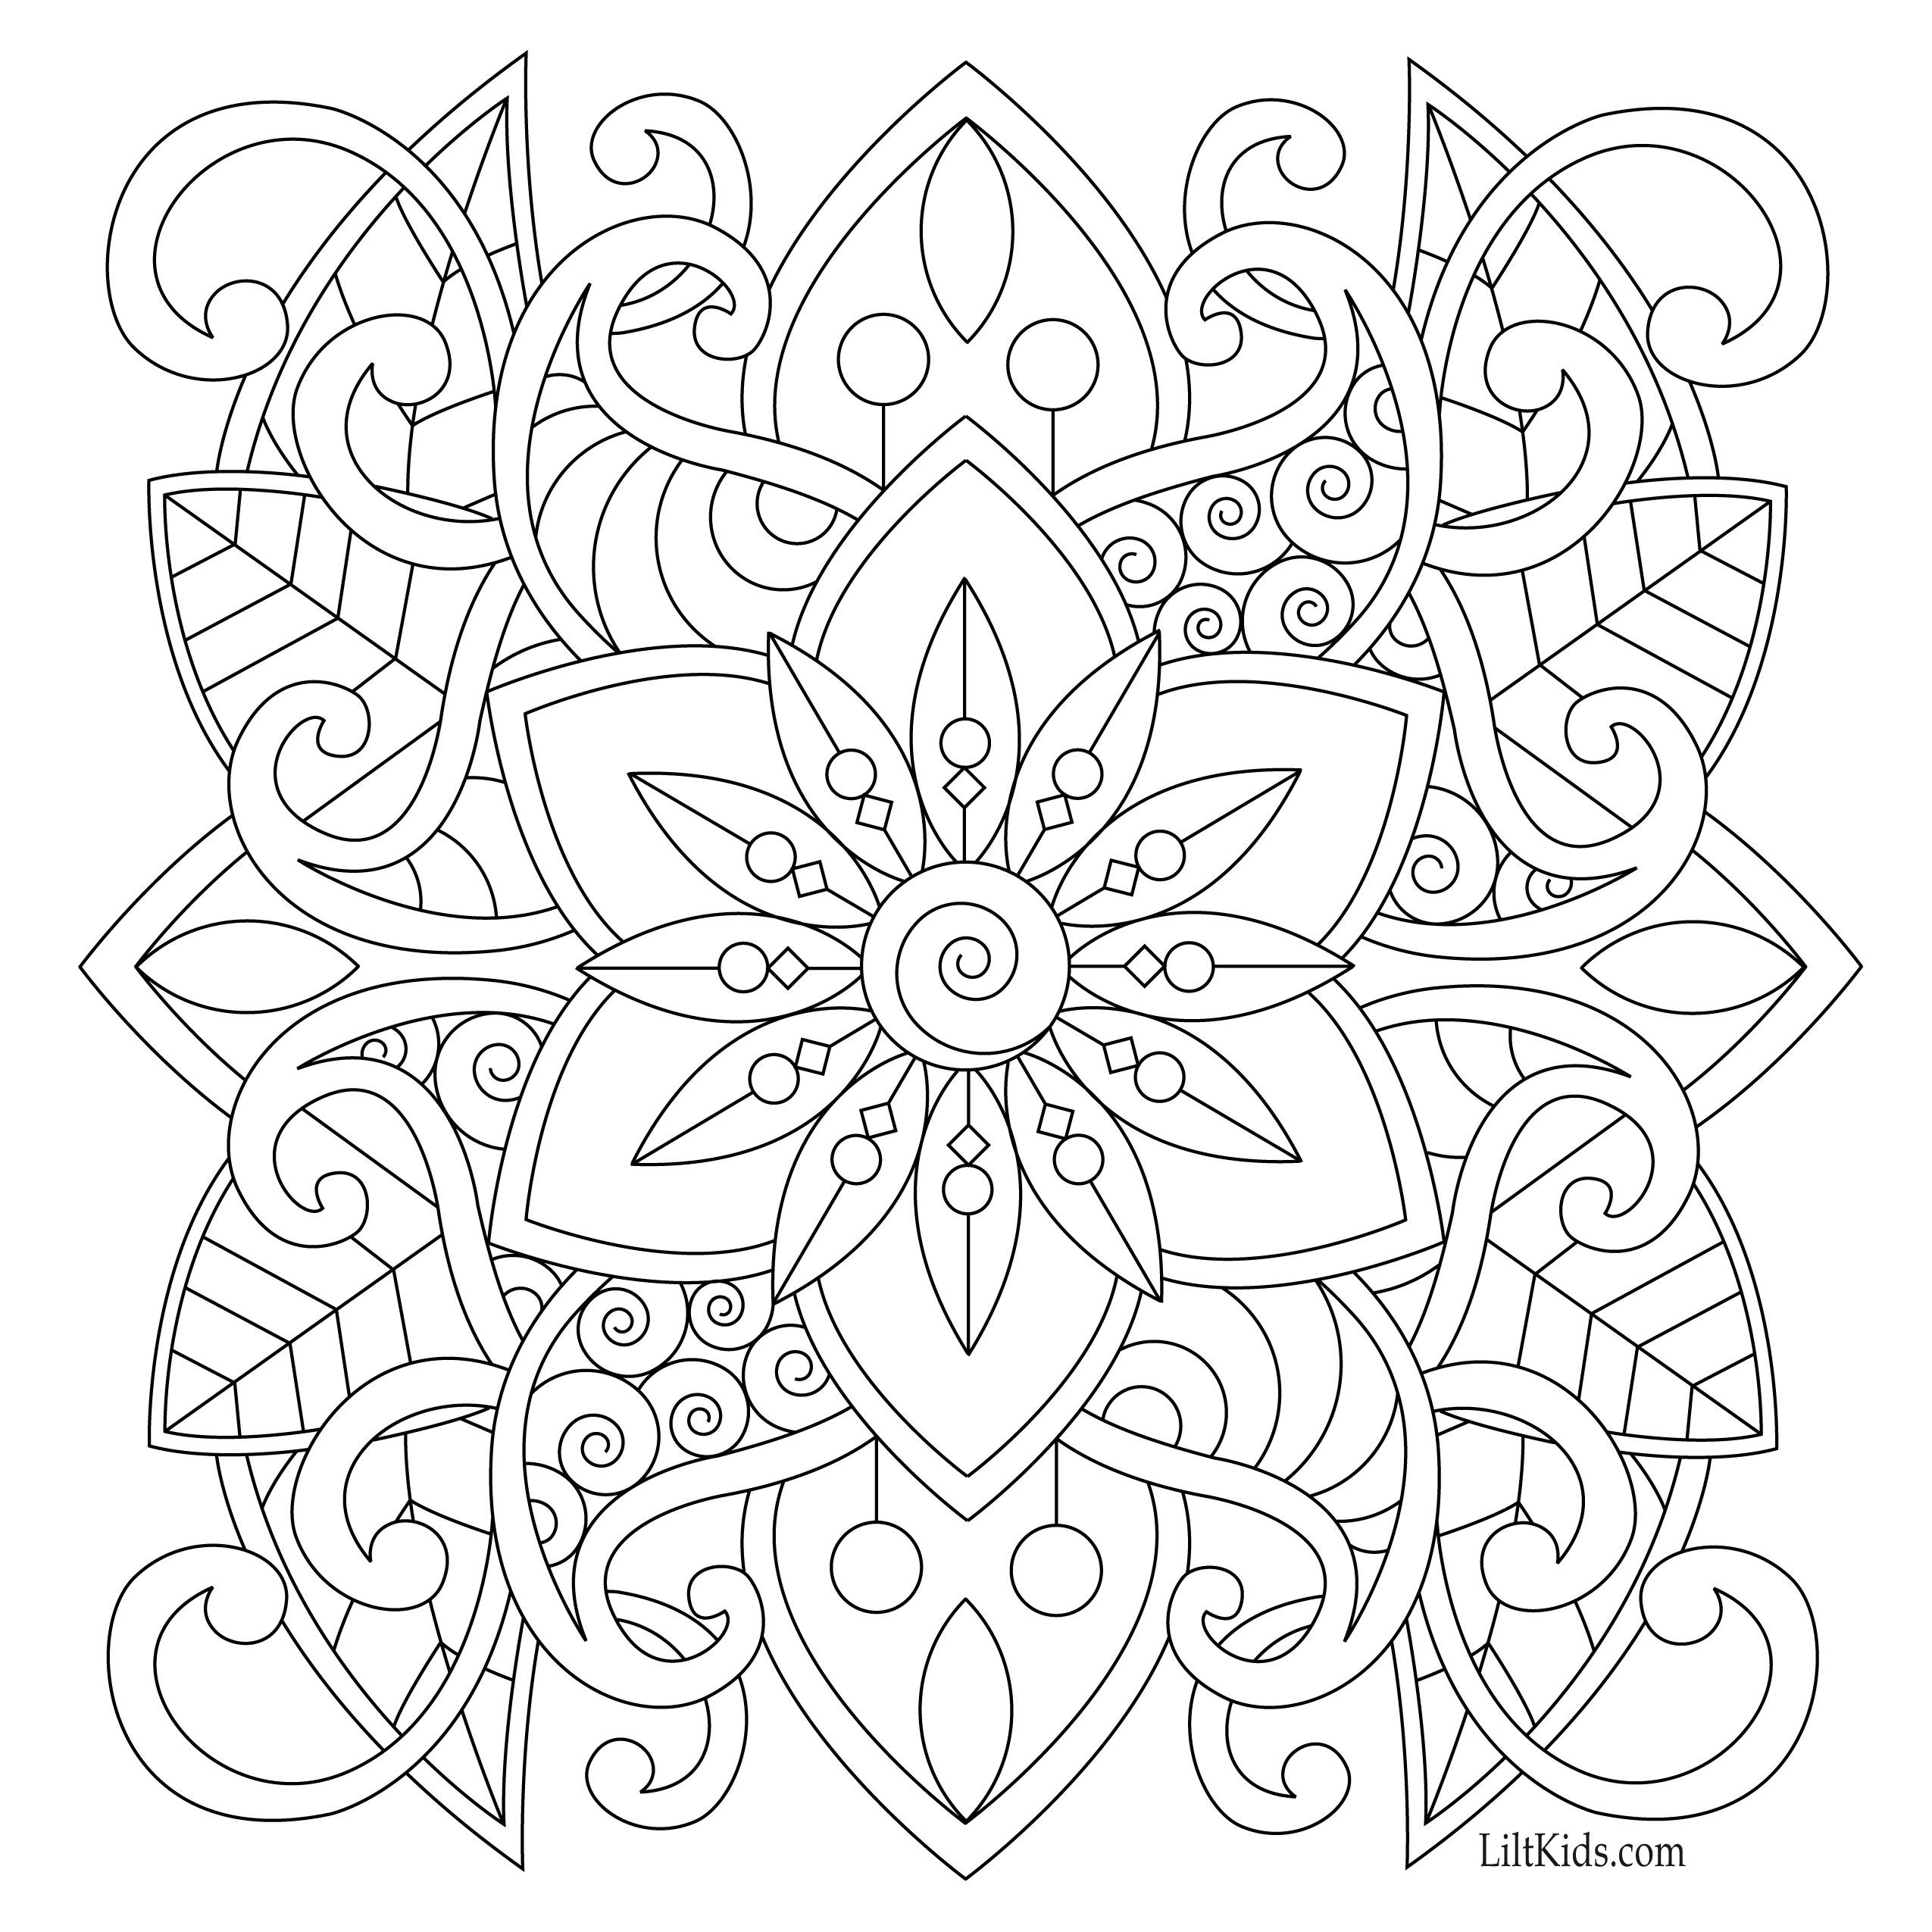 100+ Free Adult Coloring Pages | Easy coloring pages ... | free online coloring pages for adults easy